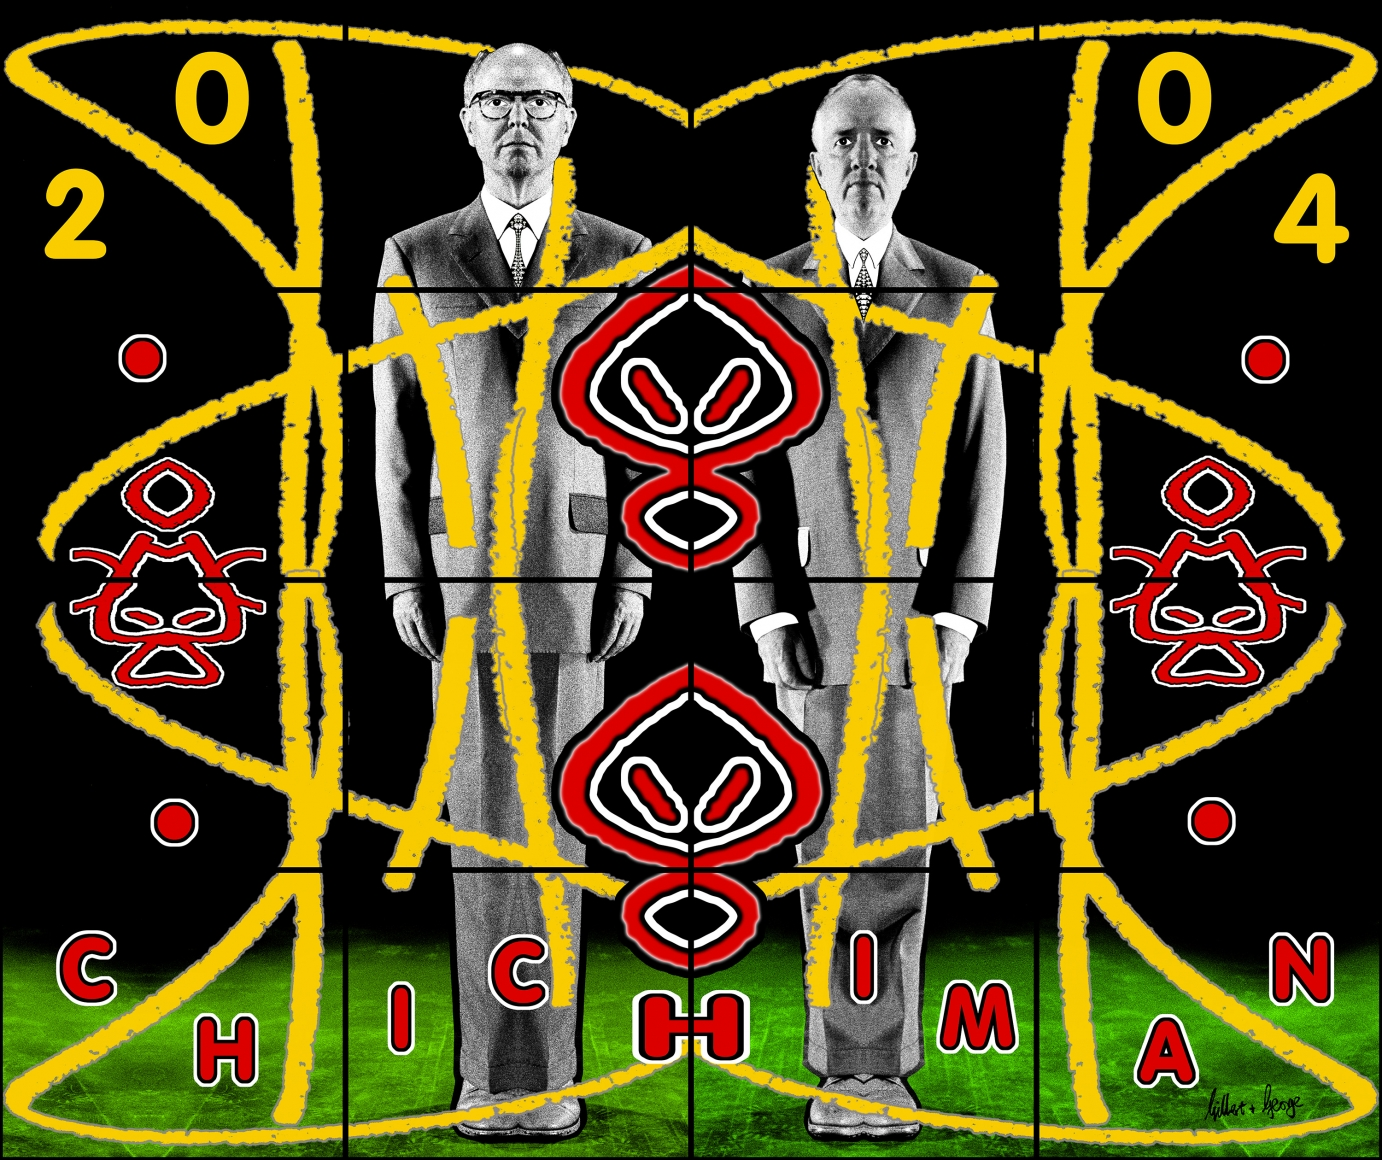 GILBERT & GEORGE, Chichiman, 2004